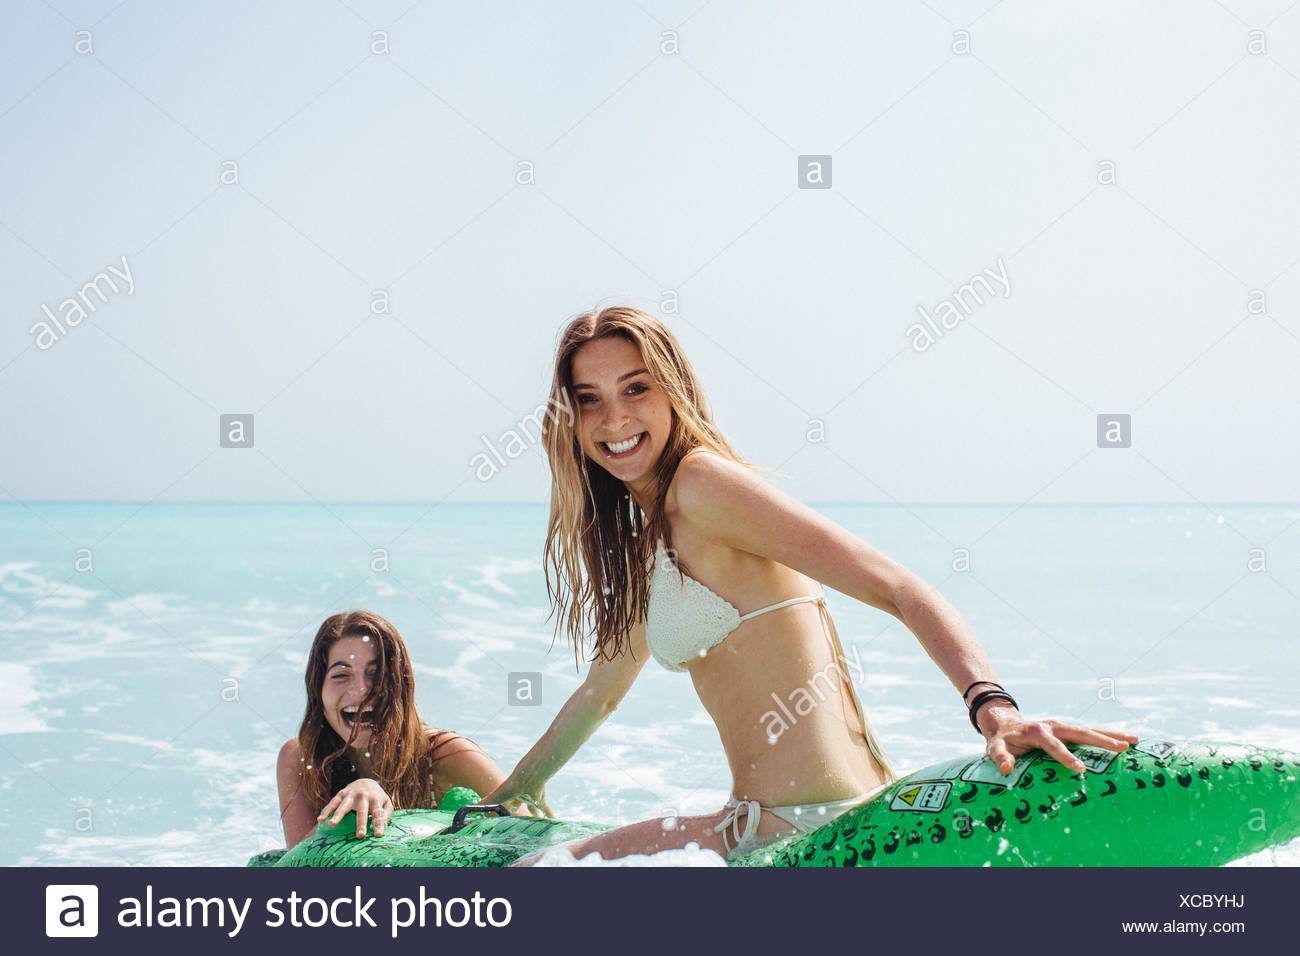 Portrait of two young female friends wearing bikinis playing on inflatable crocodile in sea - Stock Image